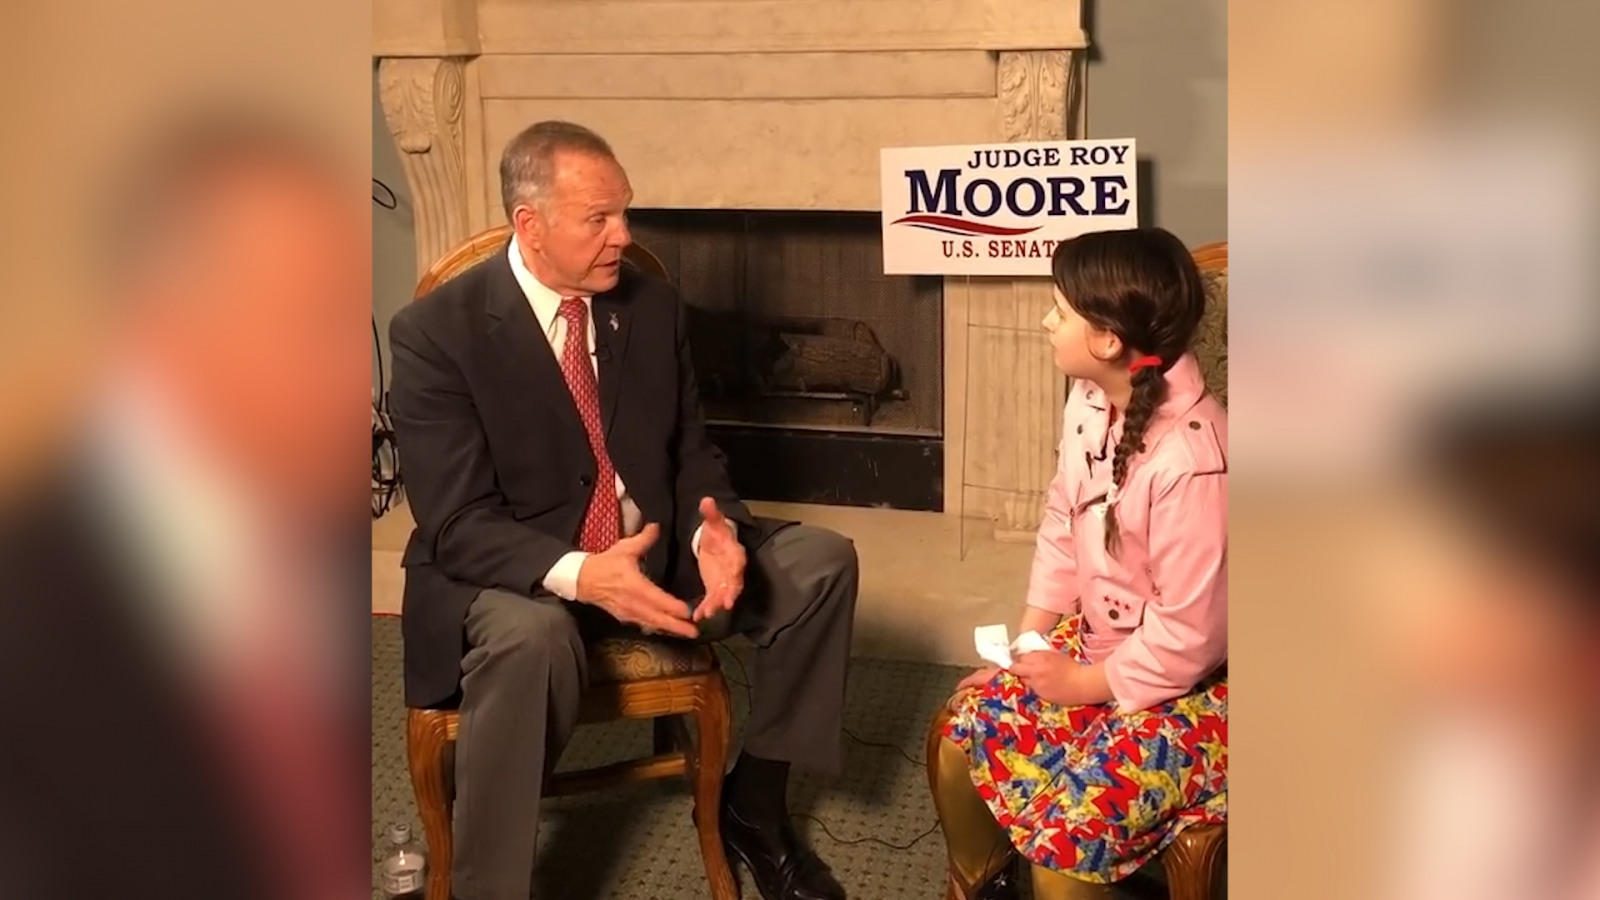 Group supporting Donald Trump sends 12-year-old girl to interview Roy Moore